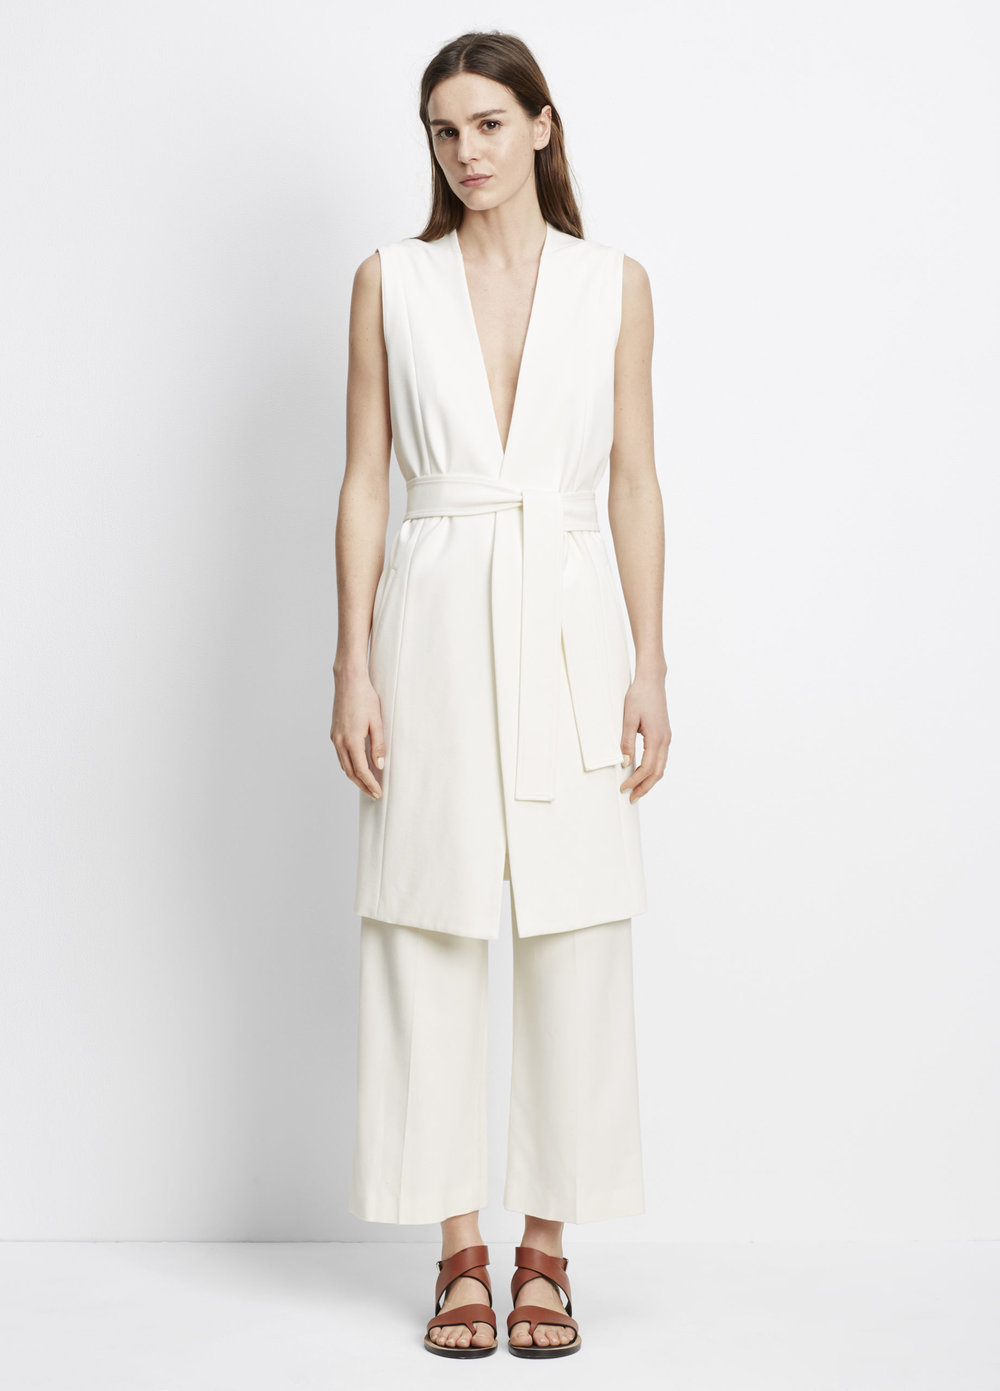 Vince Lightweight Ponte Side Slit Vest. Available in off white, black. Vince. Was: $375 Now: $150.